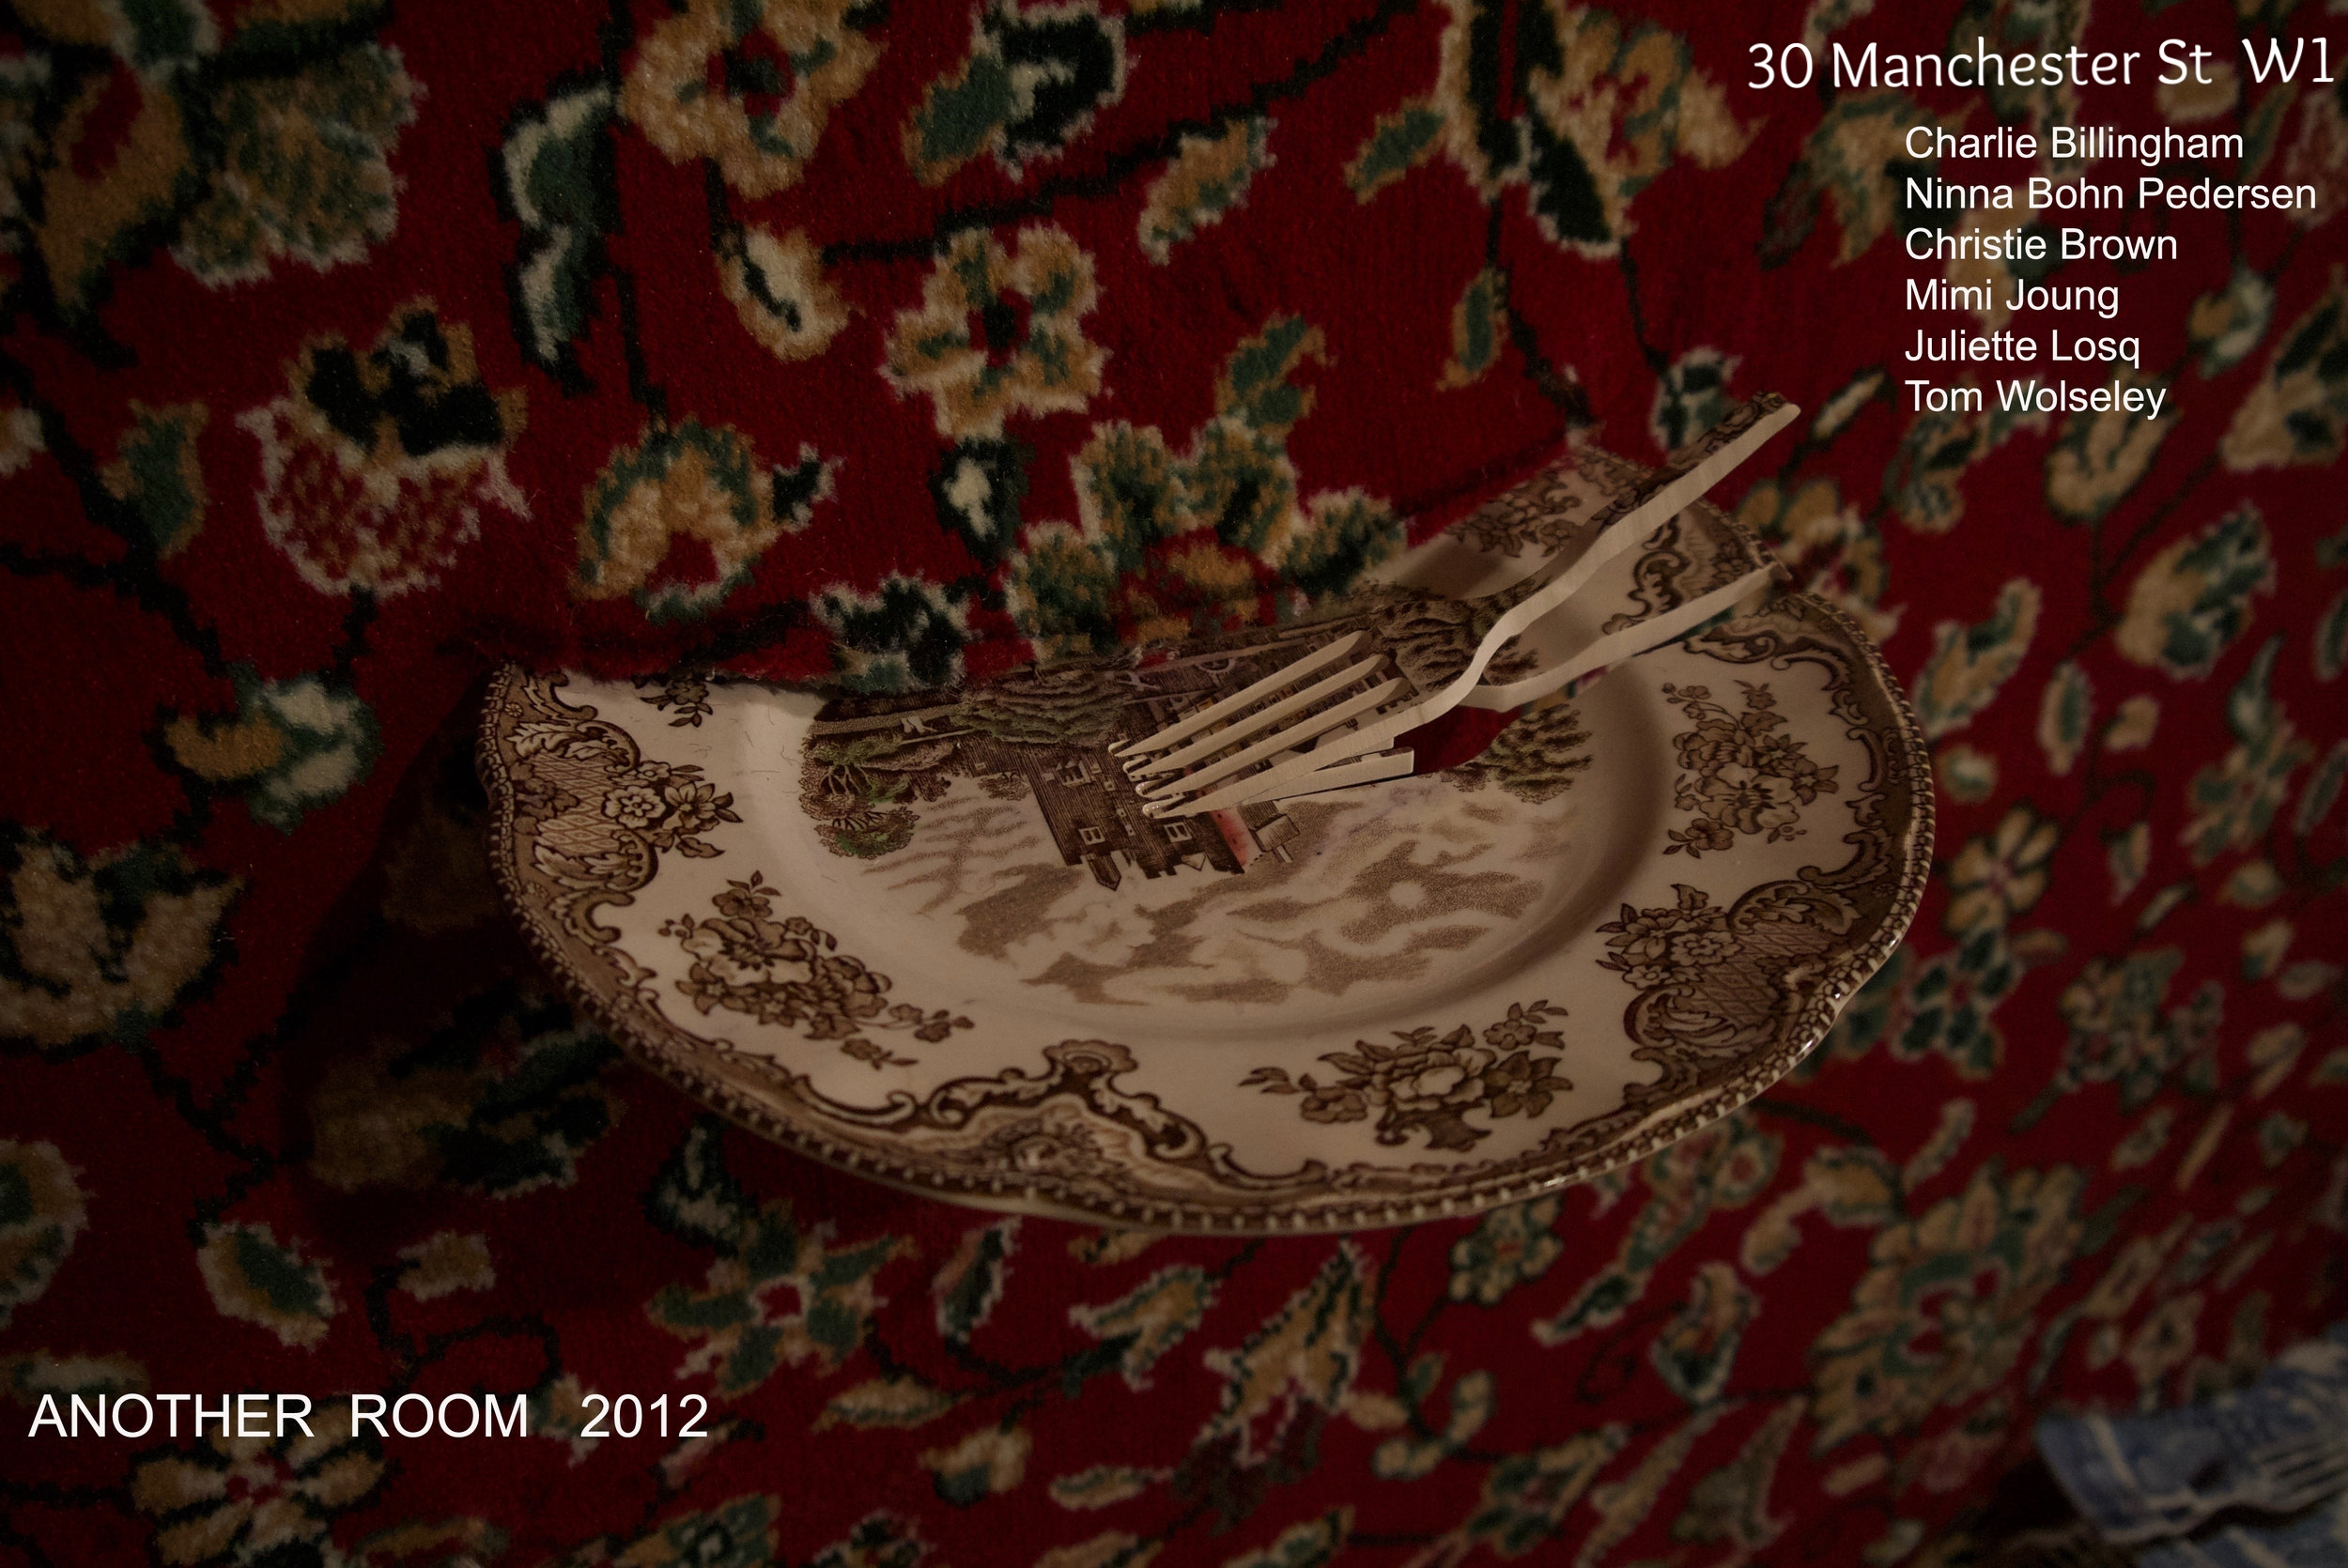 1. Another room 2012 titled 2.jpg